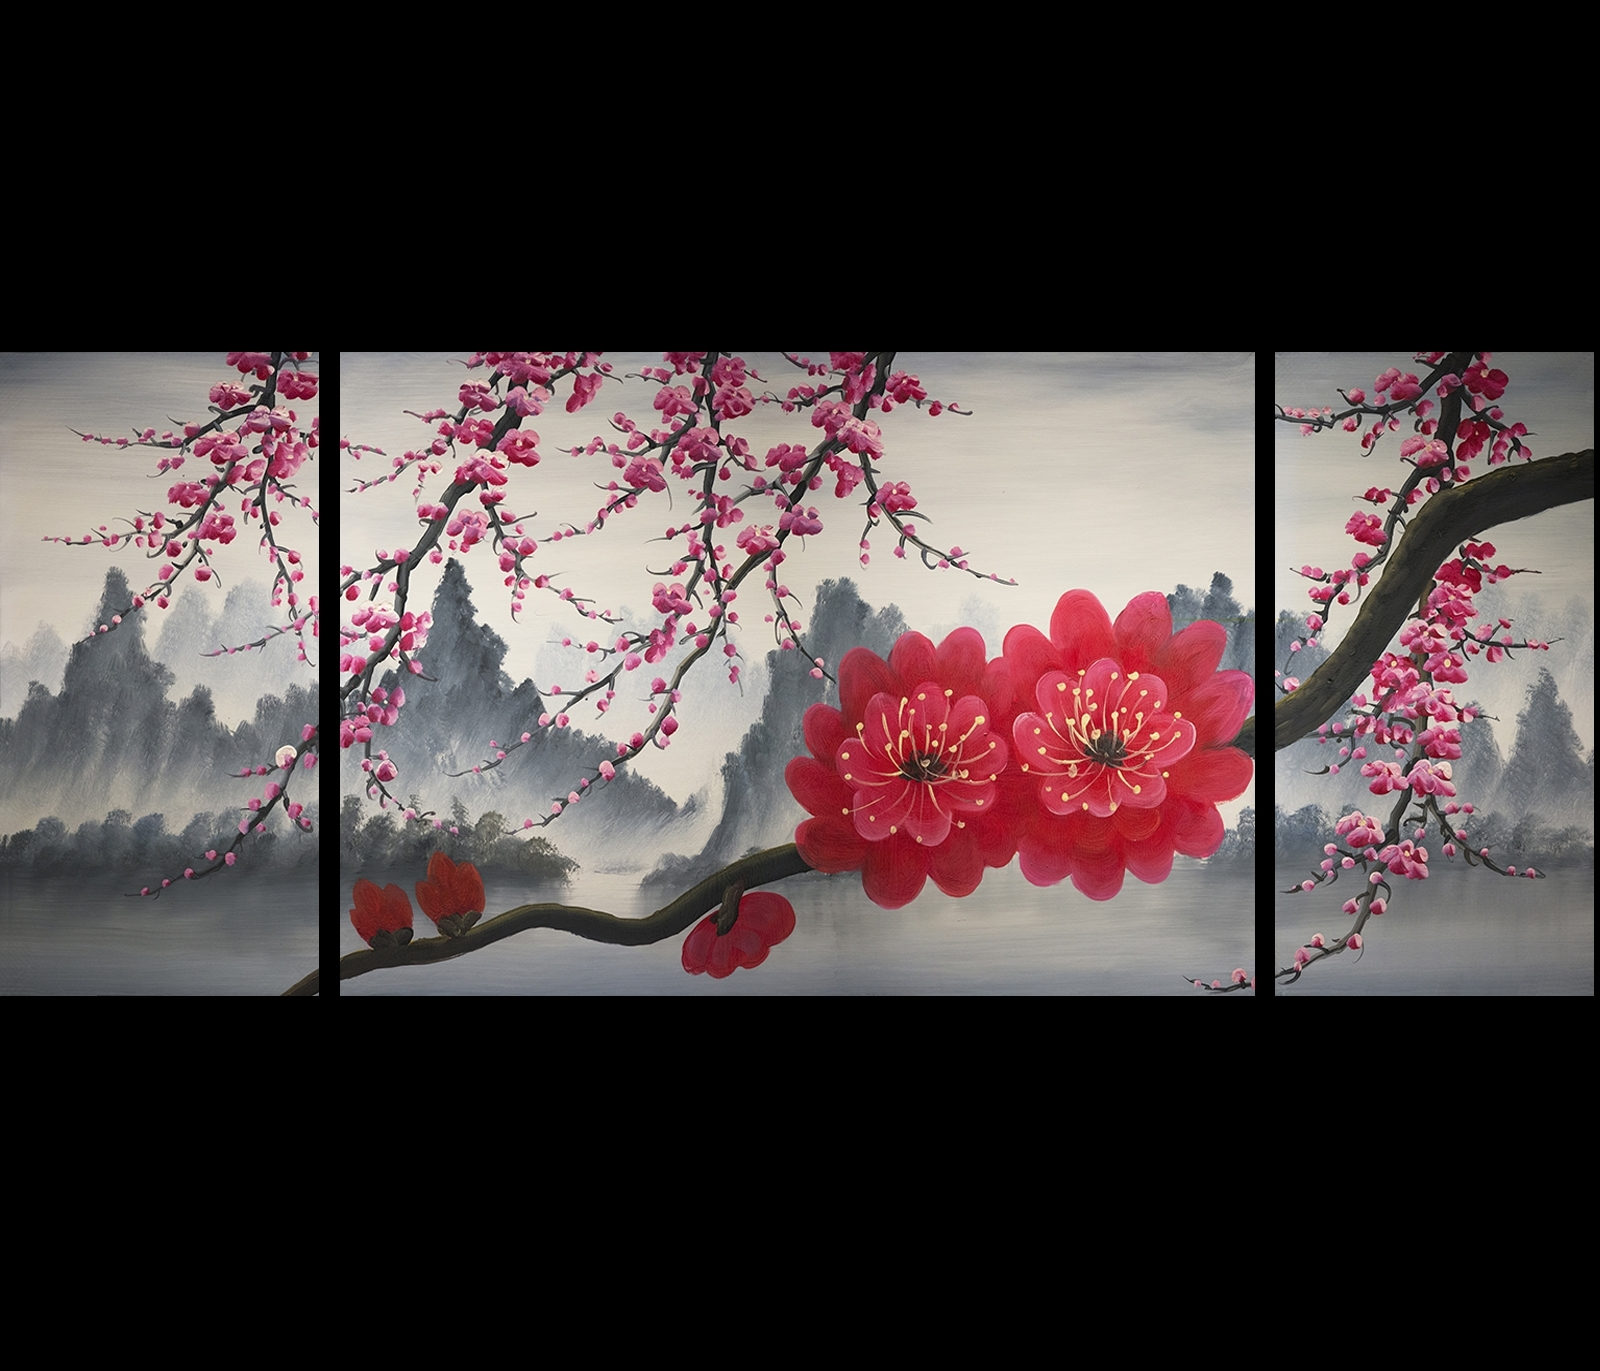 Chinese Wall Art Painting Modern Chinese Wall Art Painting intended for Chinese Wall Art (Image 11 of 20)